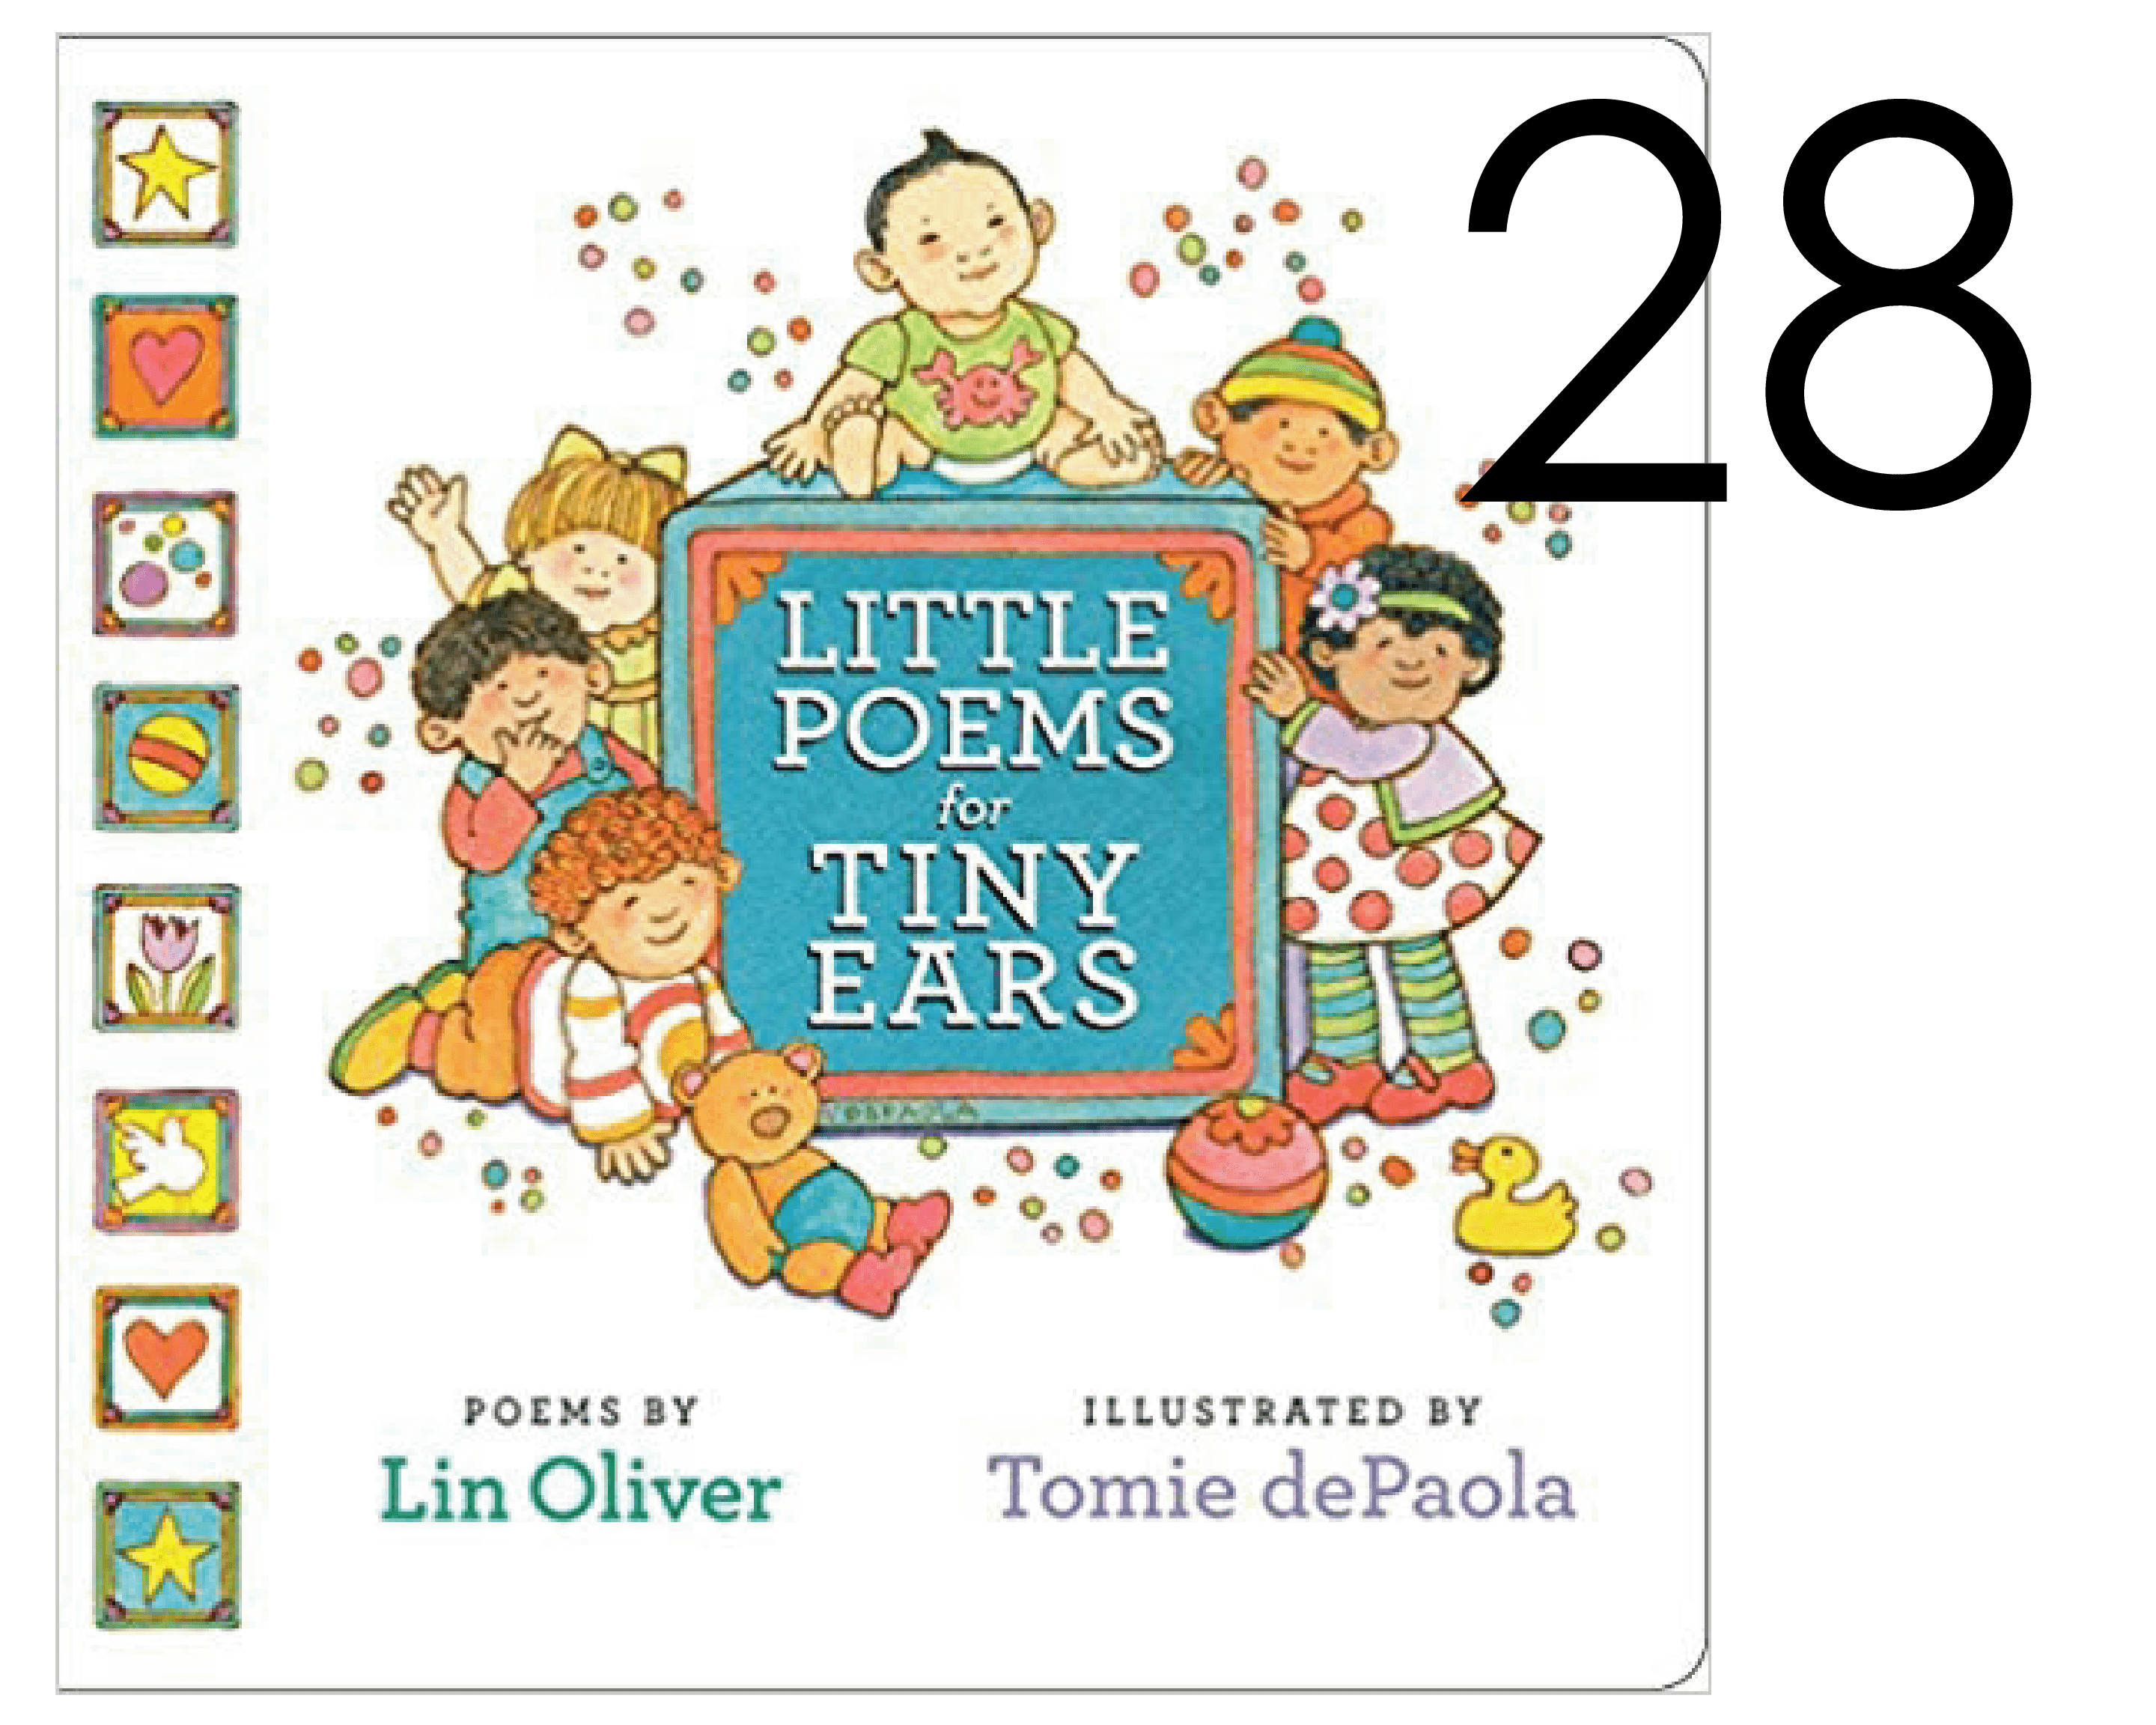 Litte Poems for Tiny Ears Holiday List of Books